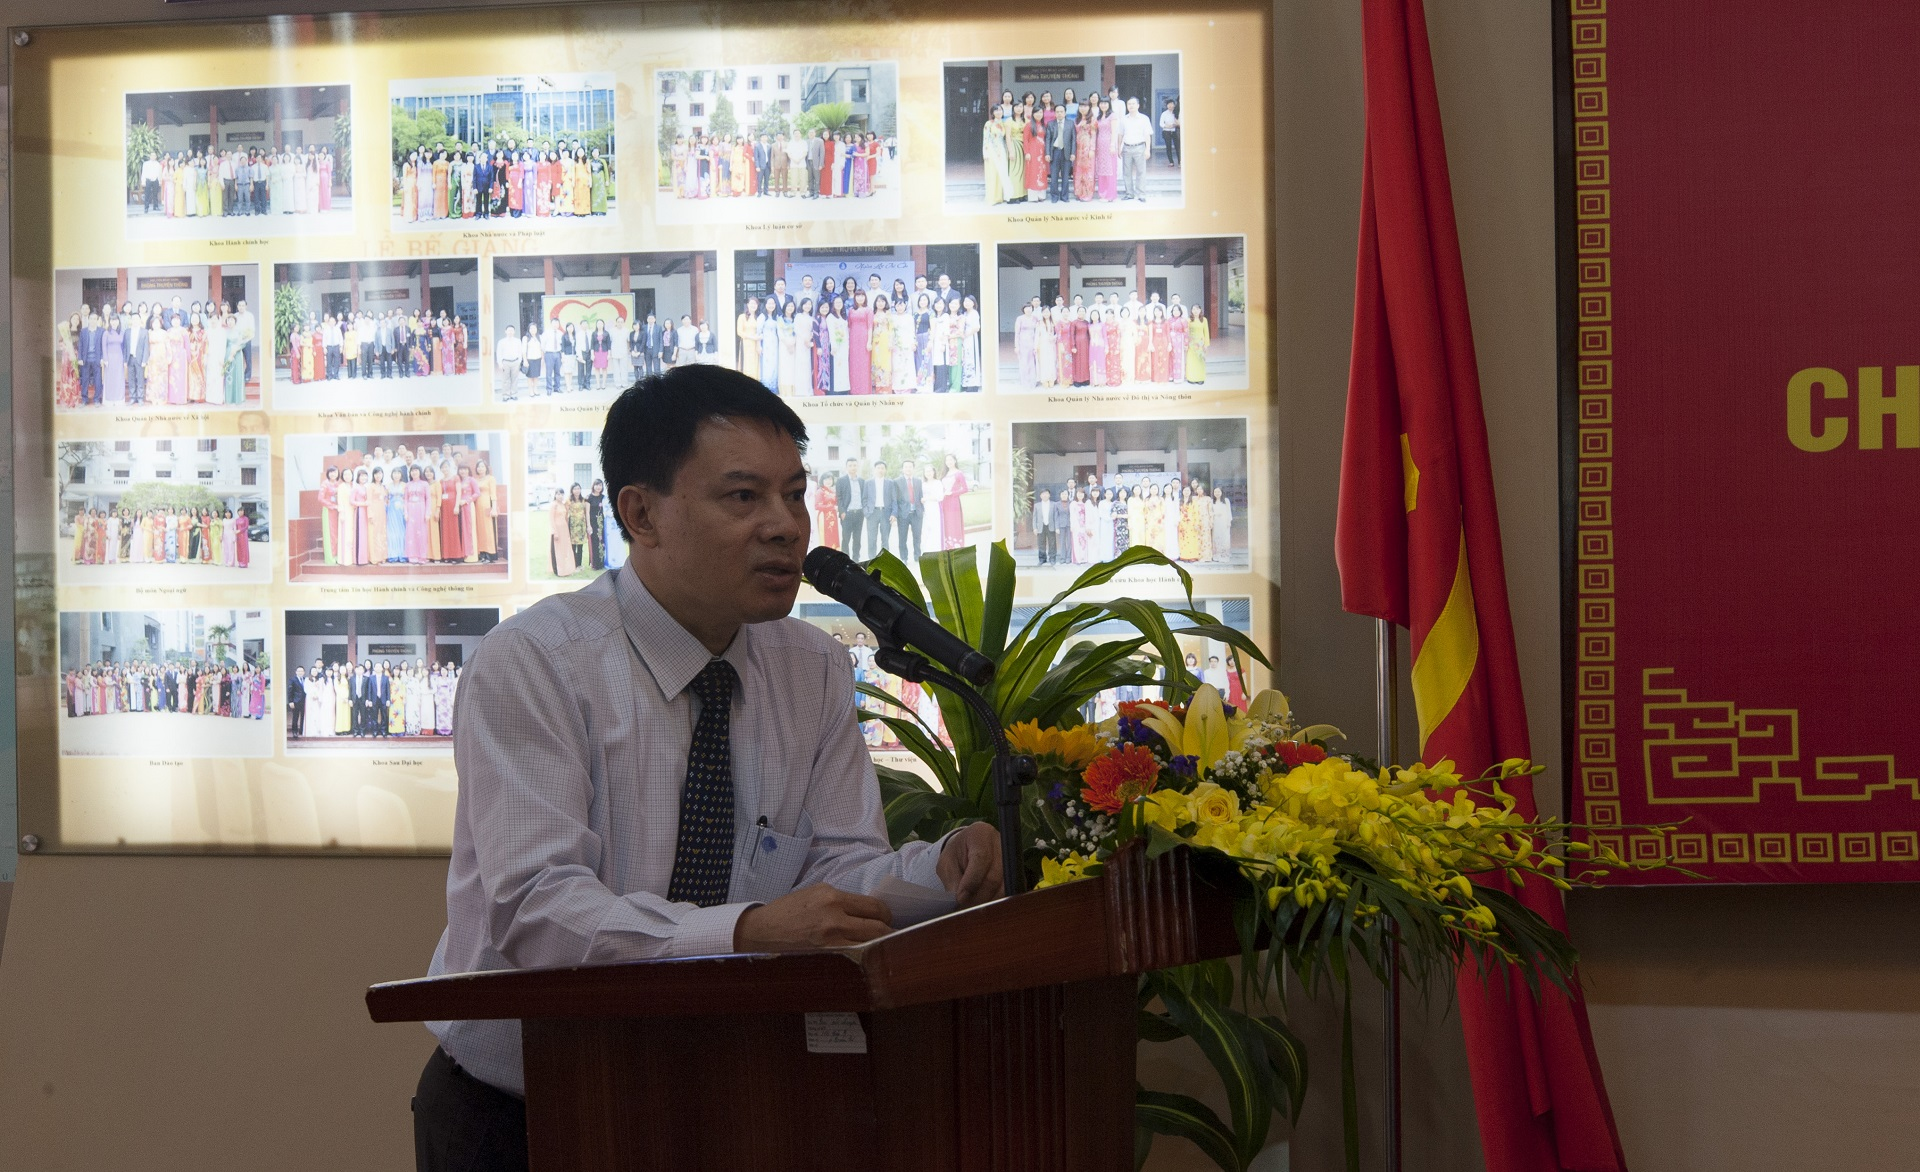 Mr. Tong Dang Hung, Vice Dean of  Public Servant Training faculty delivers a speech in the ceremony